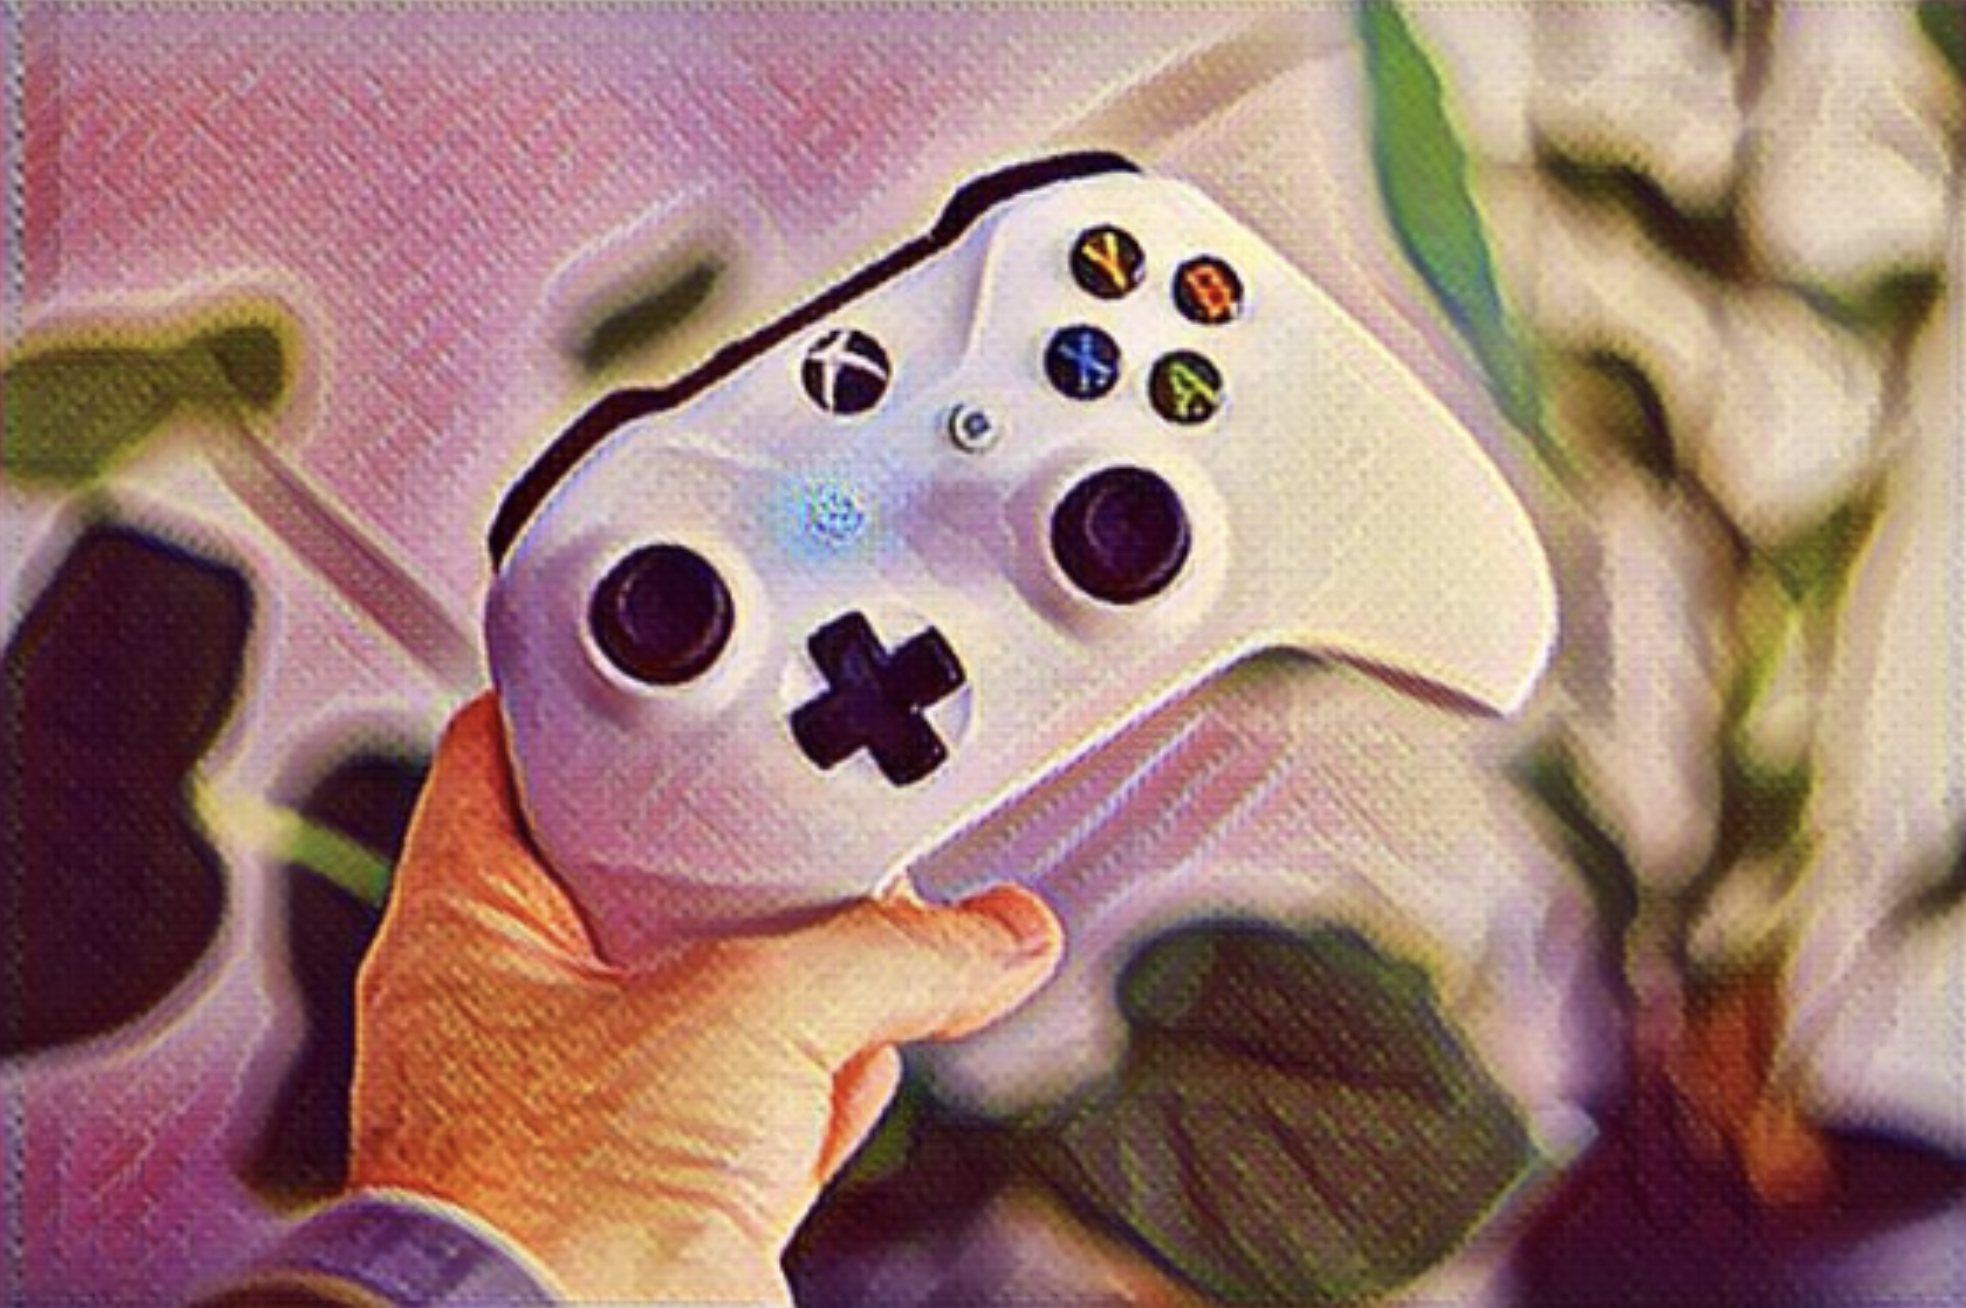 xbox controller with style transfer effect applied